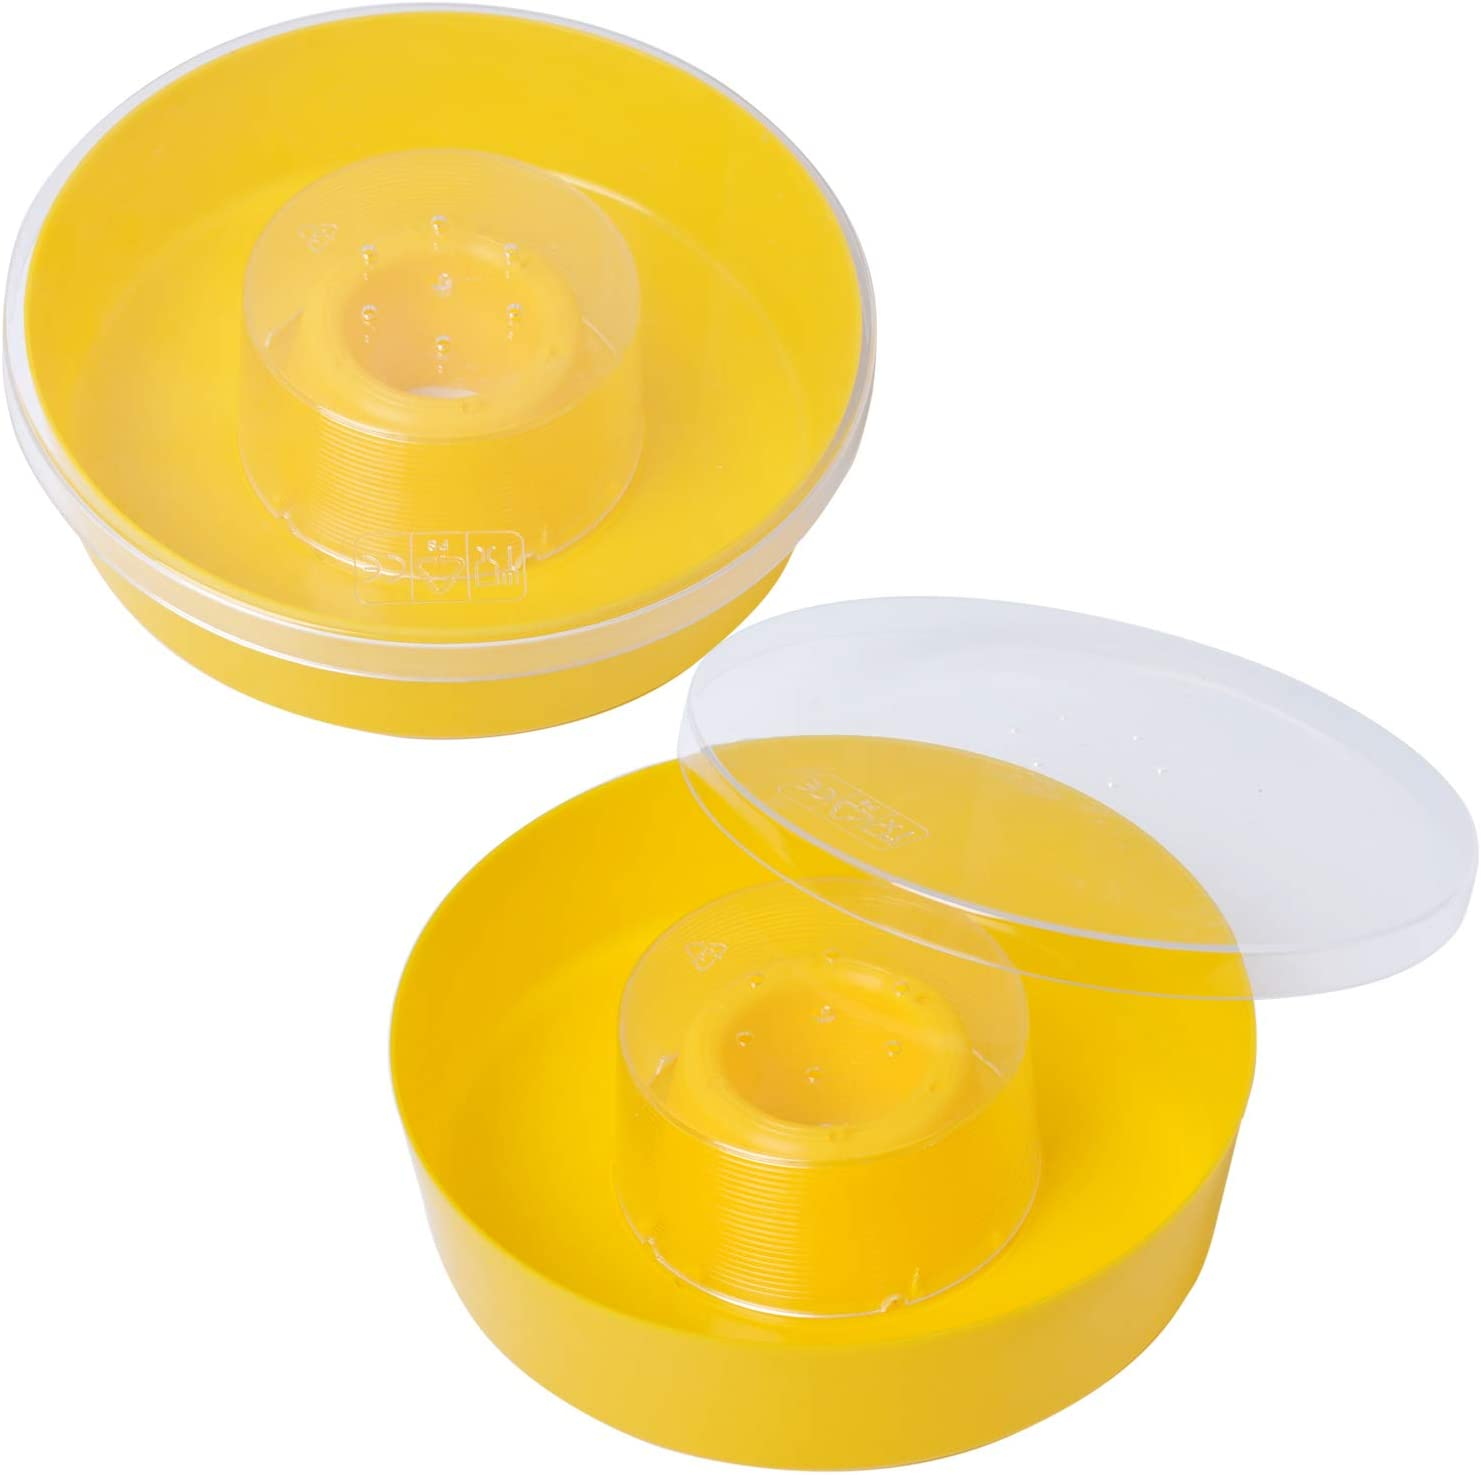 Swess Bee Rapid Feeder, Round Beehive Water Feeder Beehive Drinking Bowl for Beekeeping Supplies